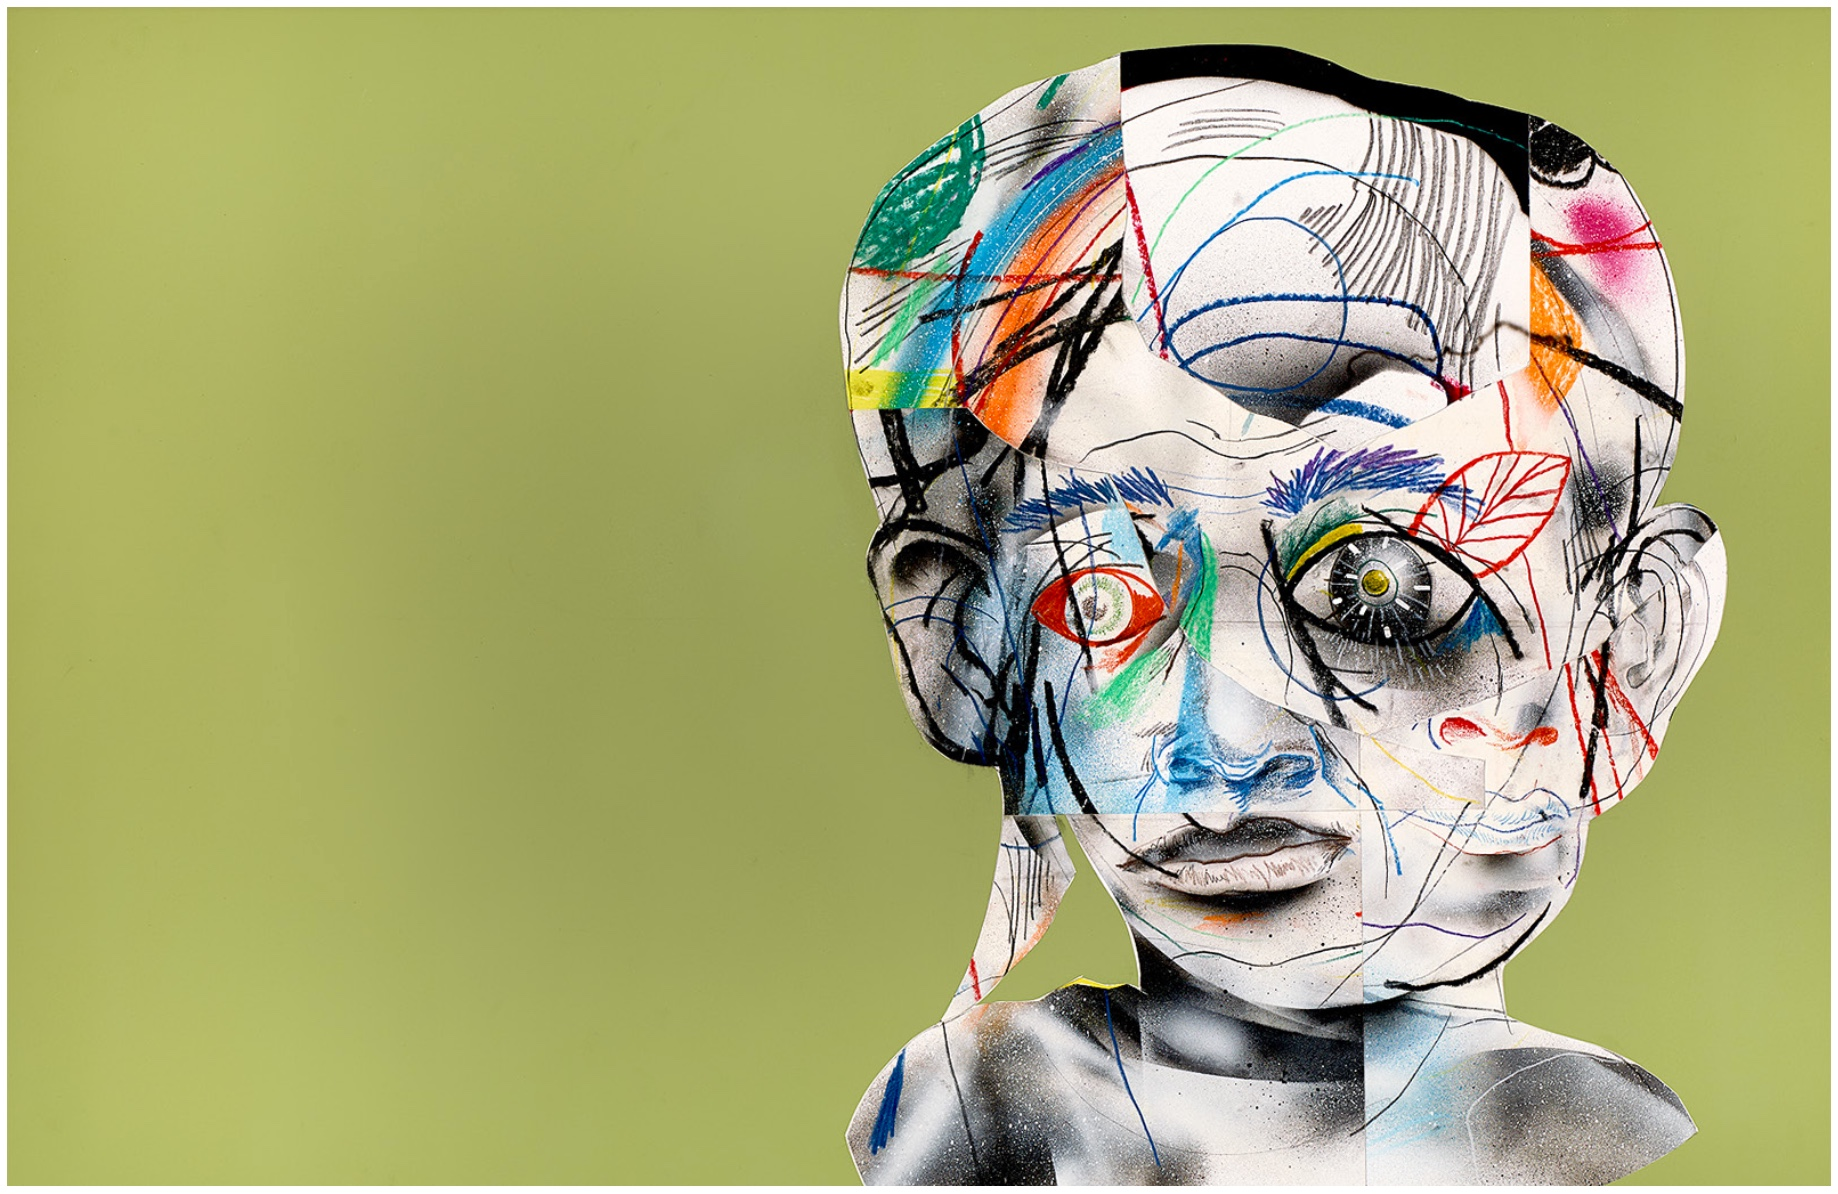 Complicated   (Light green)  Mixed media on paper  2013  37 x 25 In  $6,500.00